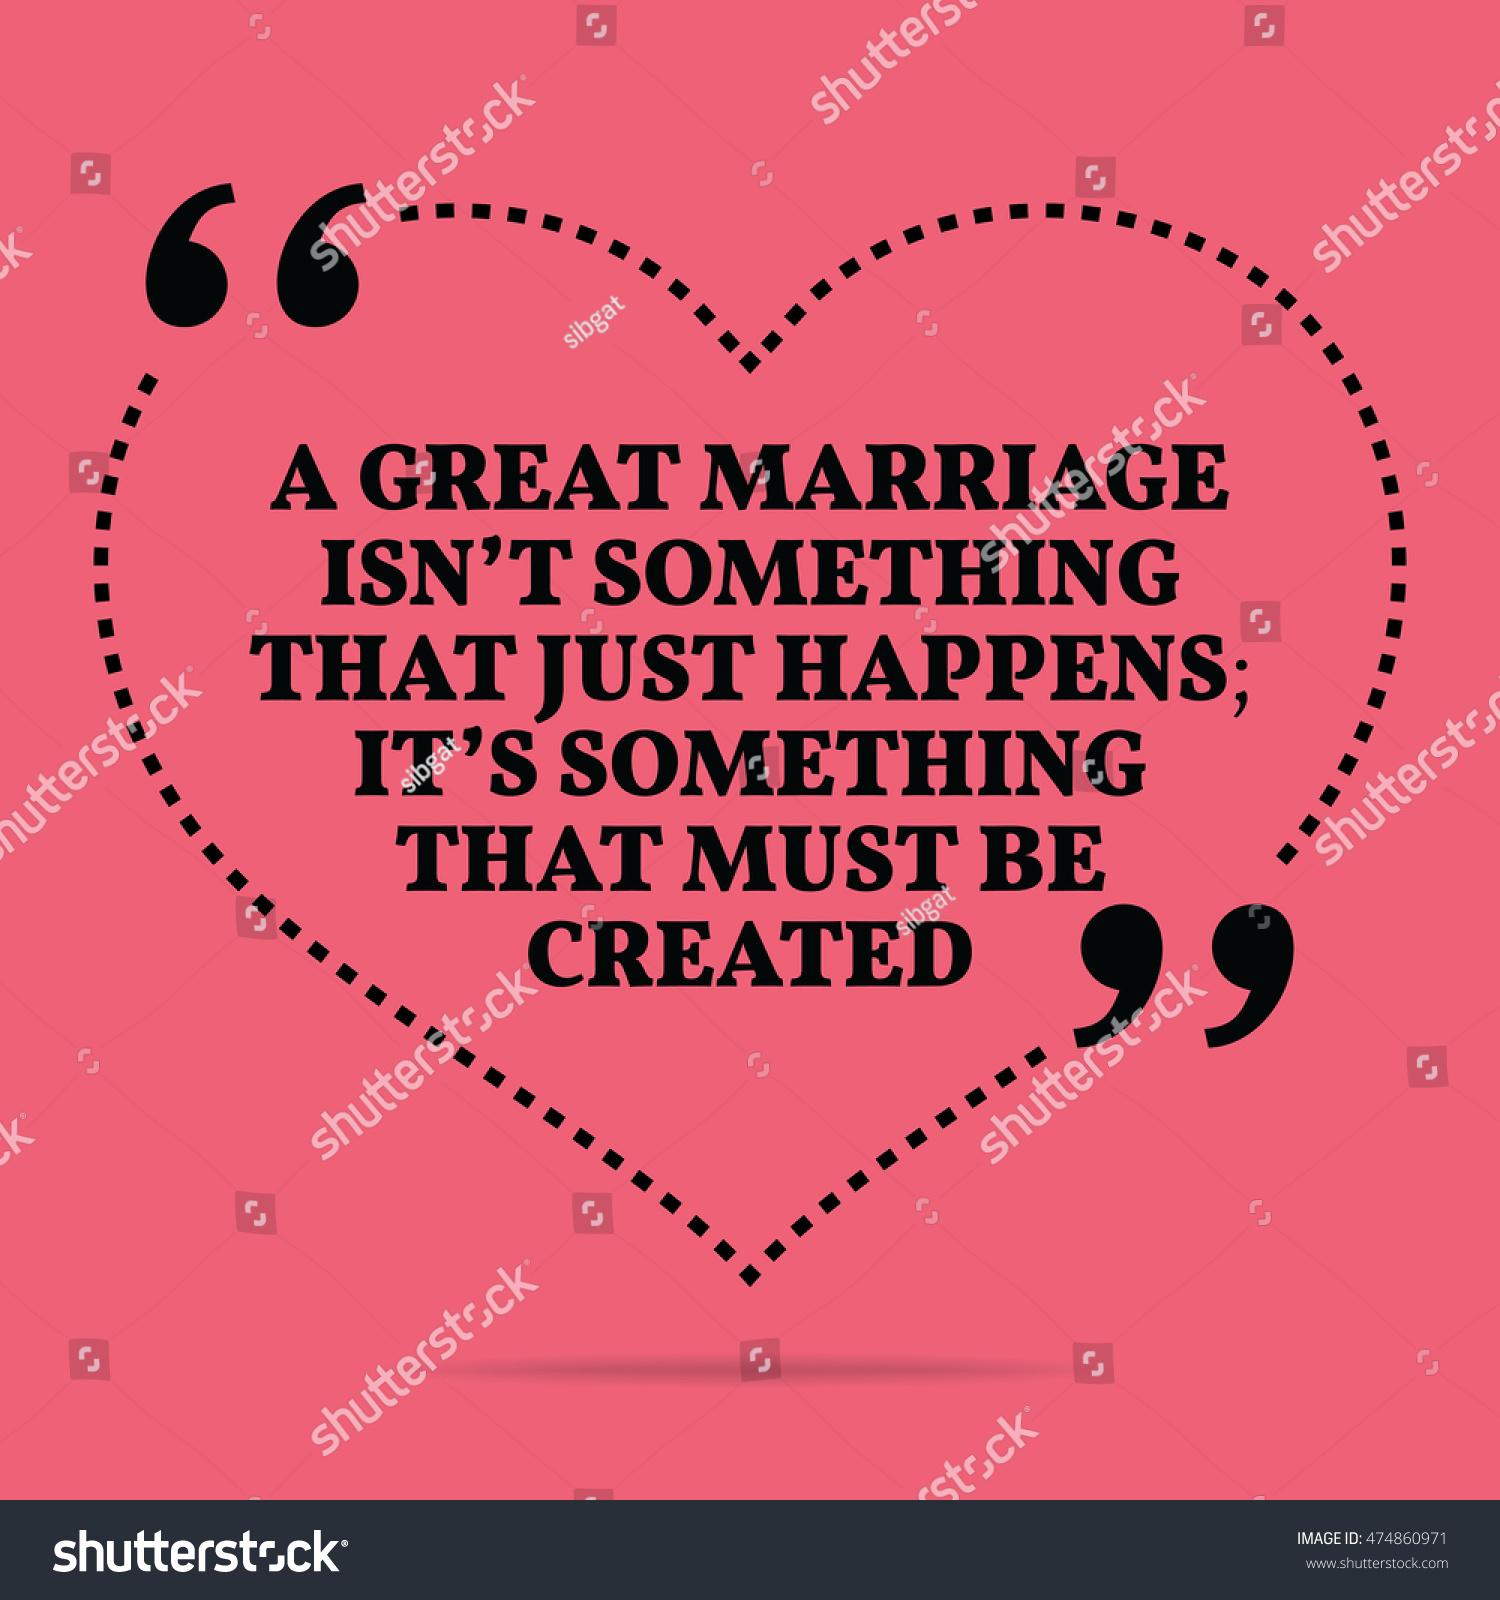 Royalty Free Stock Illustration Of Inspirational Love Marriage Quote